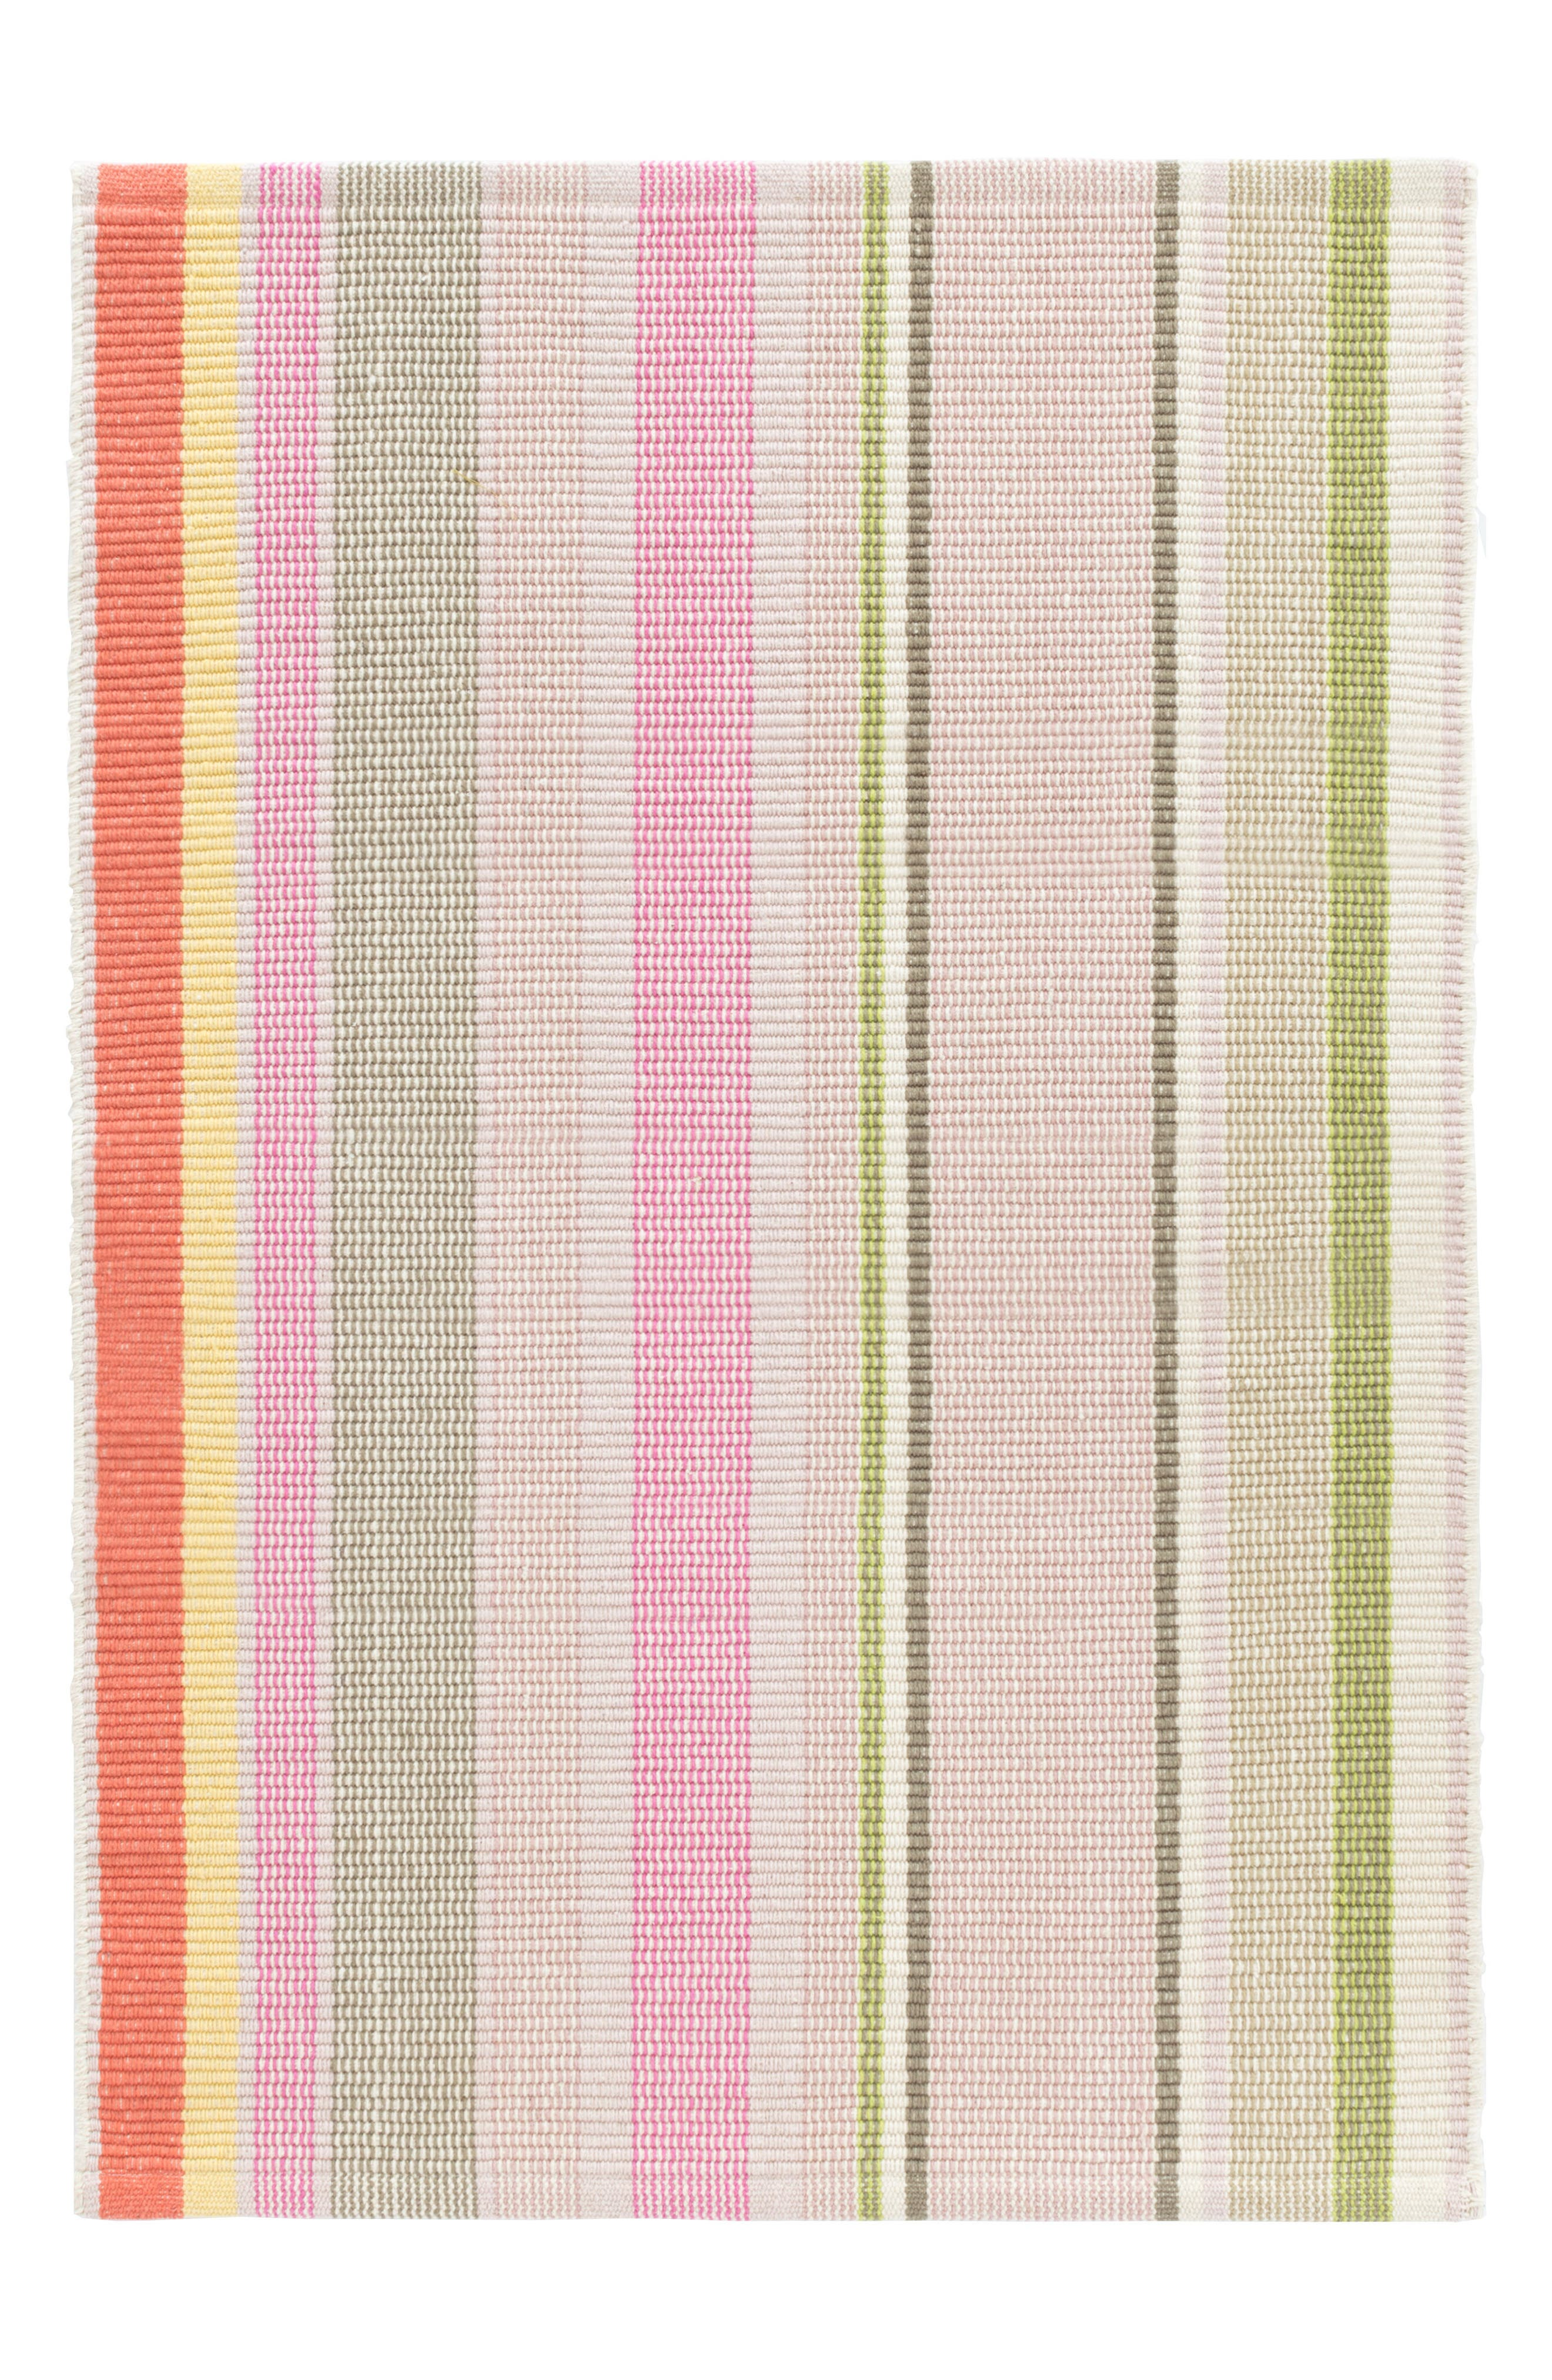 Paris Stripe Woven Cotton Rug,                             Main thumbnail 1, color,                             PINK